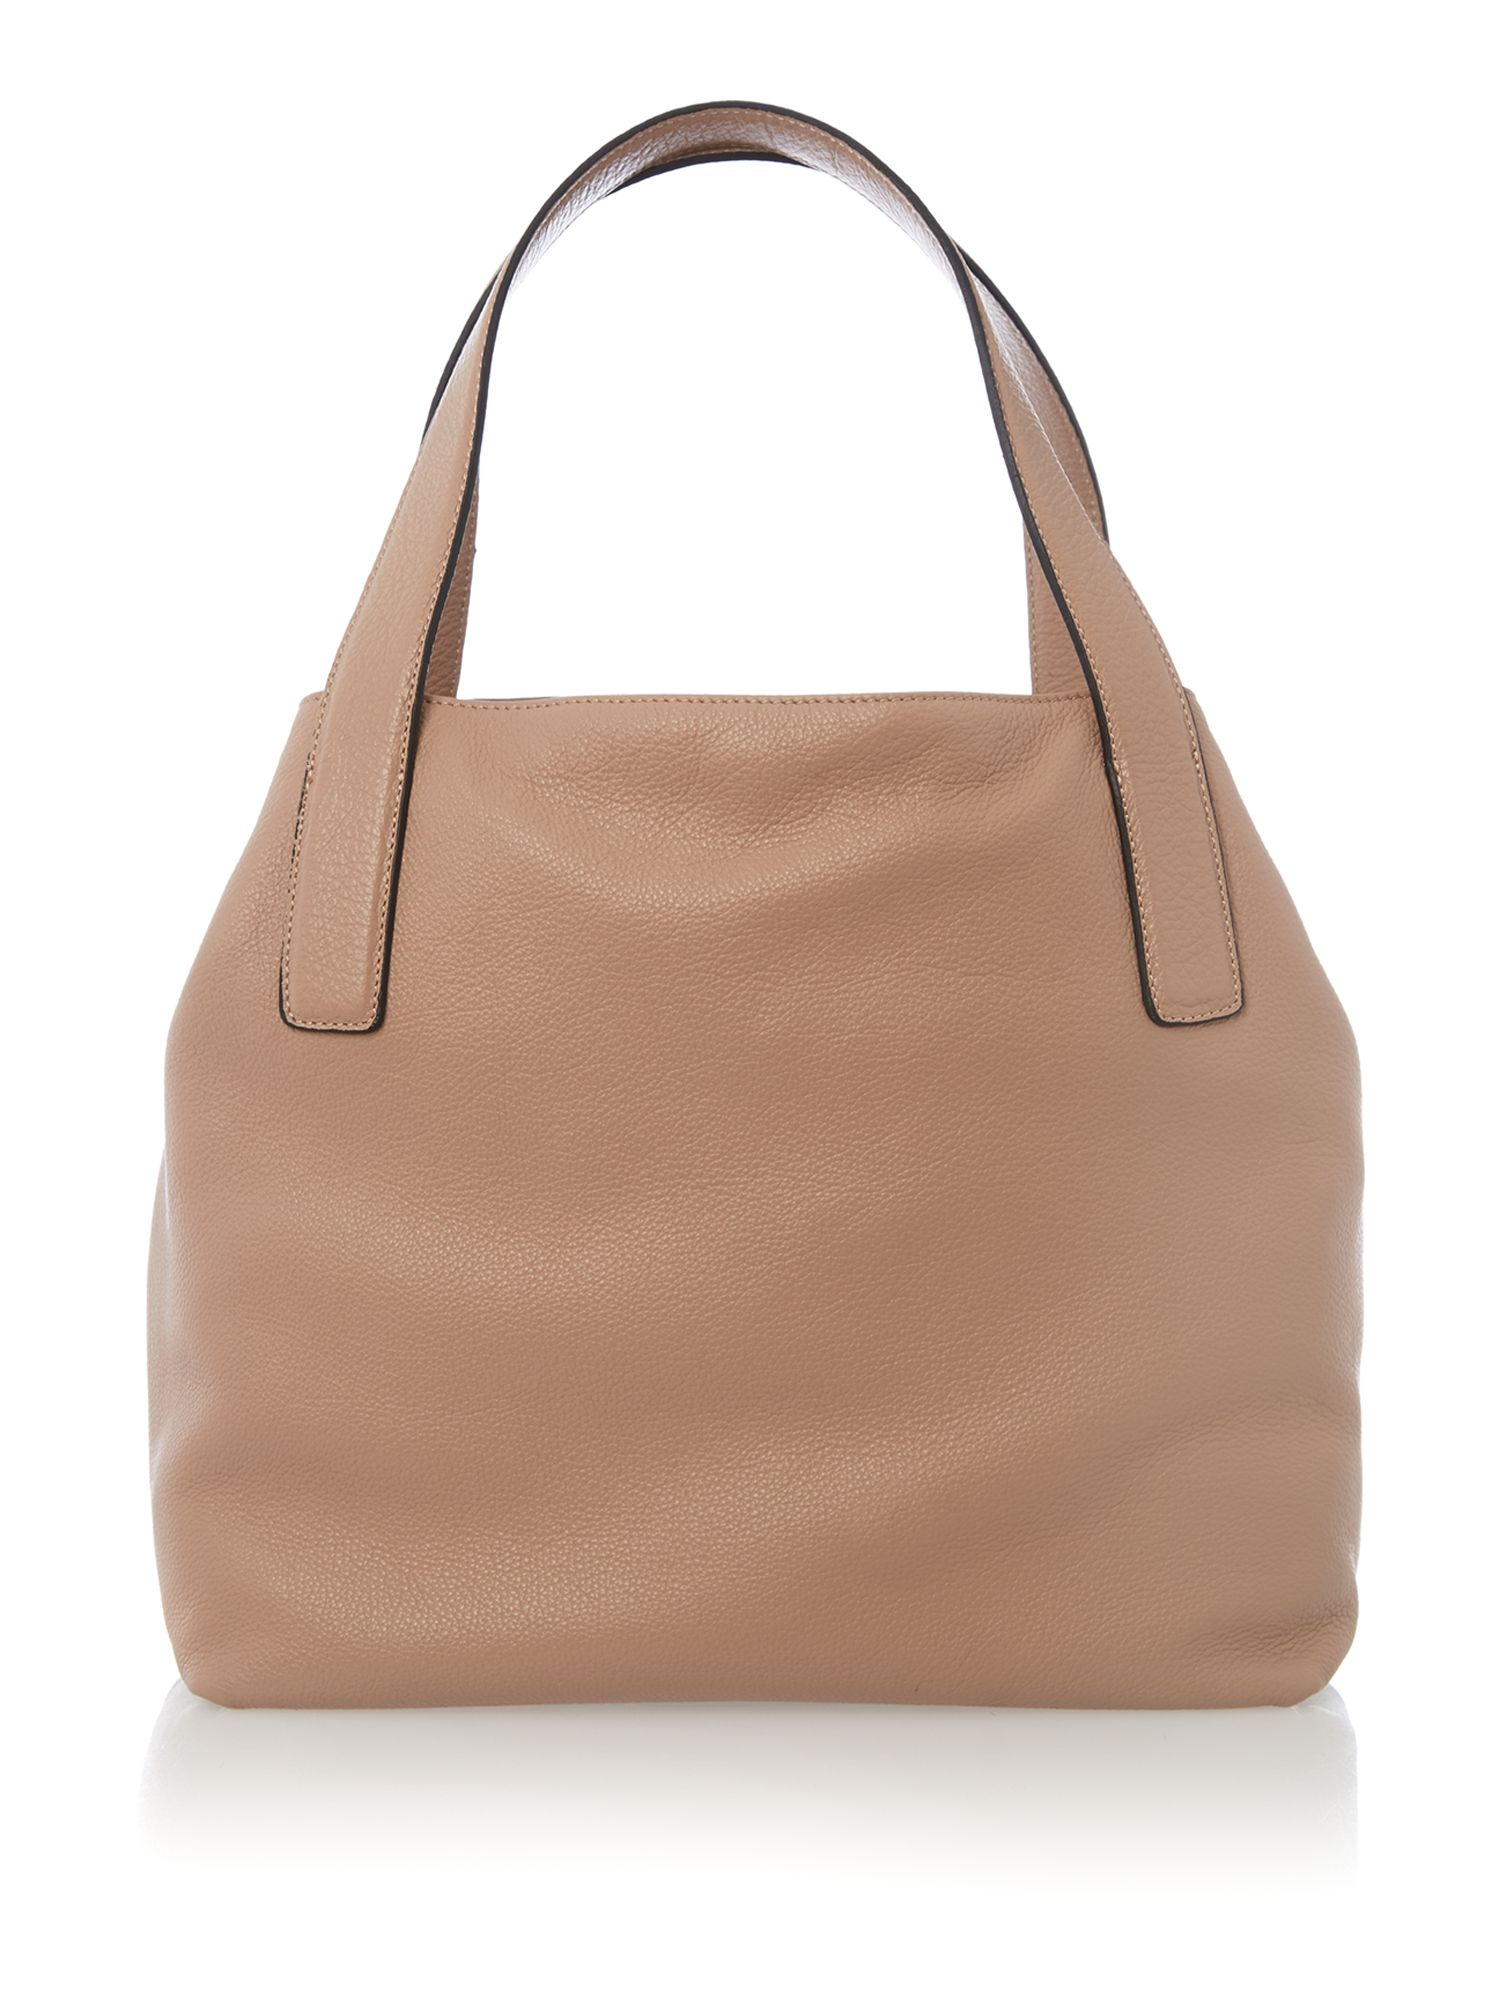 Mila tan small hobo bag